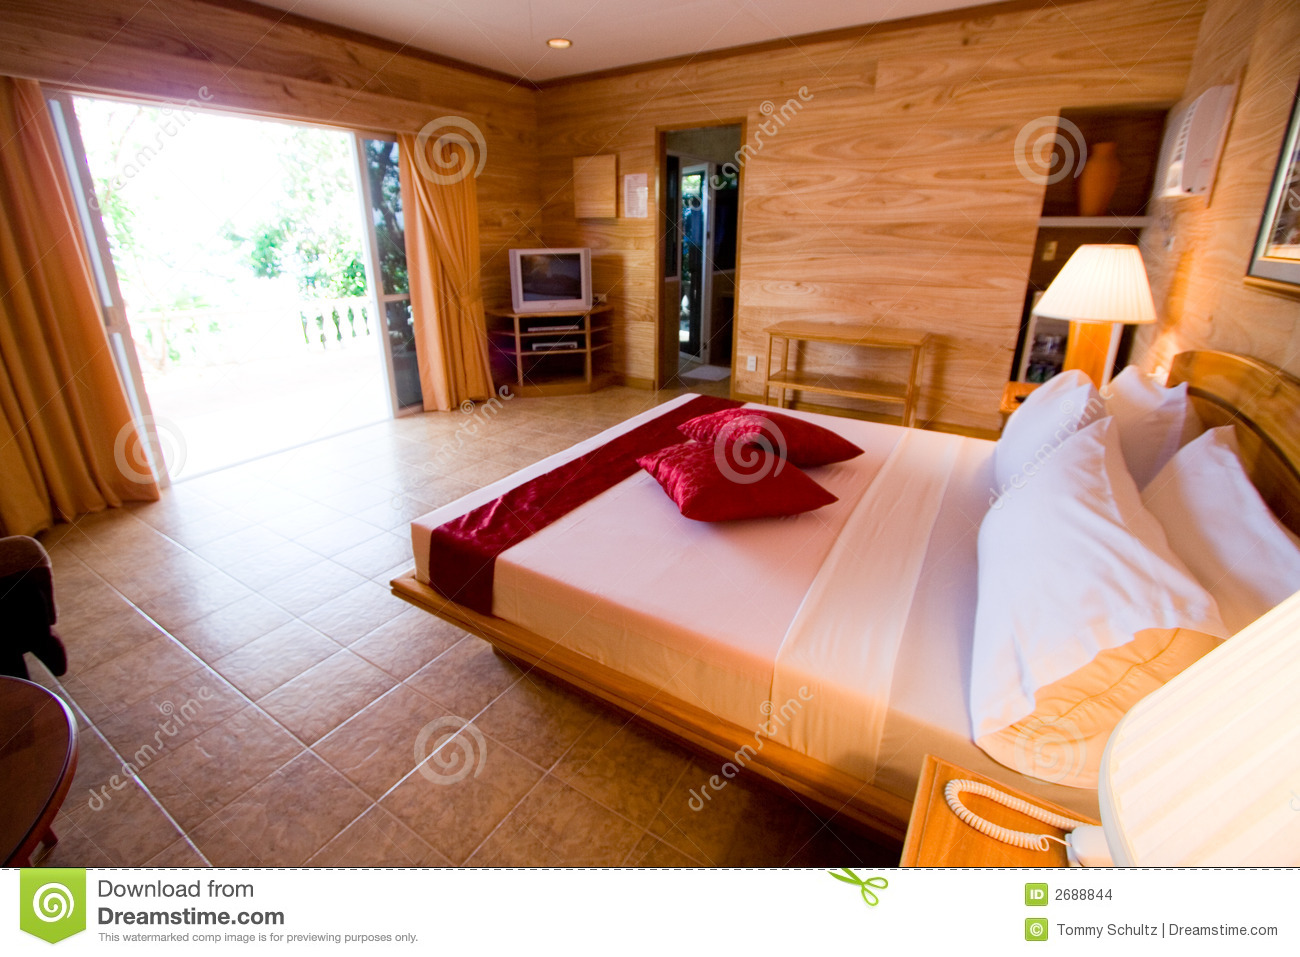 Modern hotel room interior stock photo image 18197840 - Five Star Hotel Room Stock Images